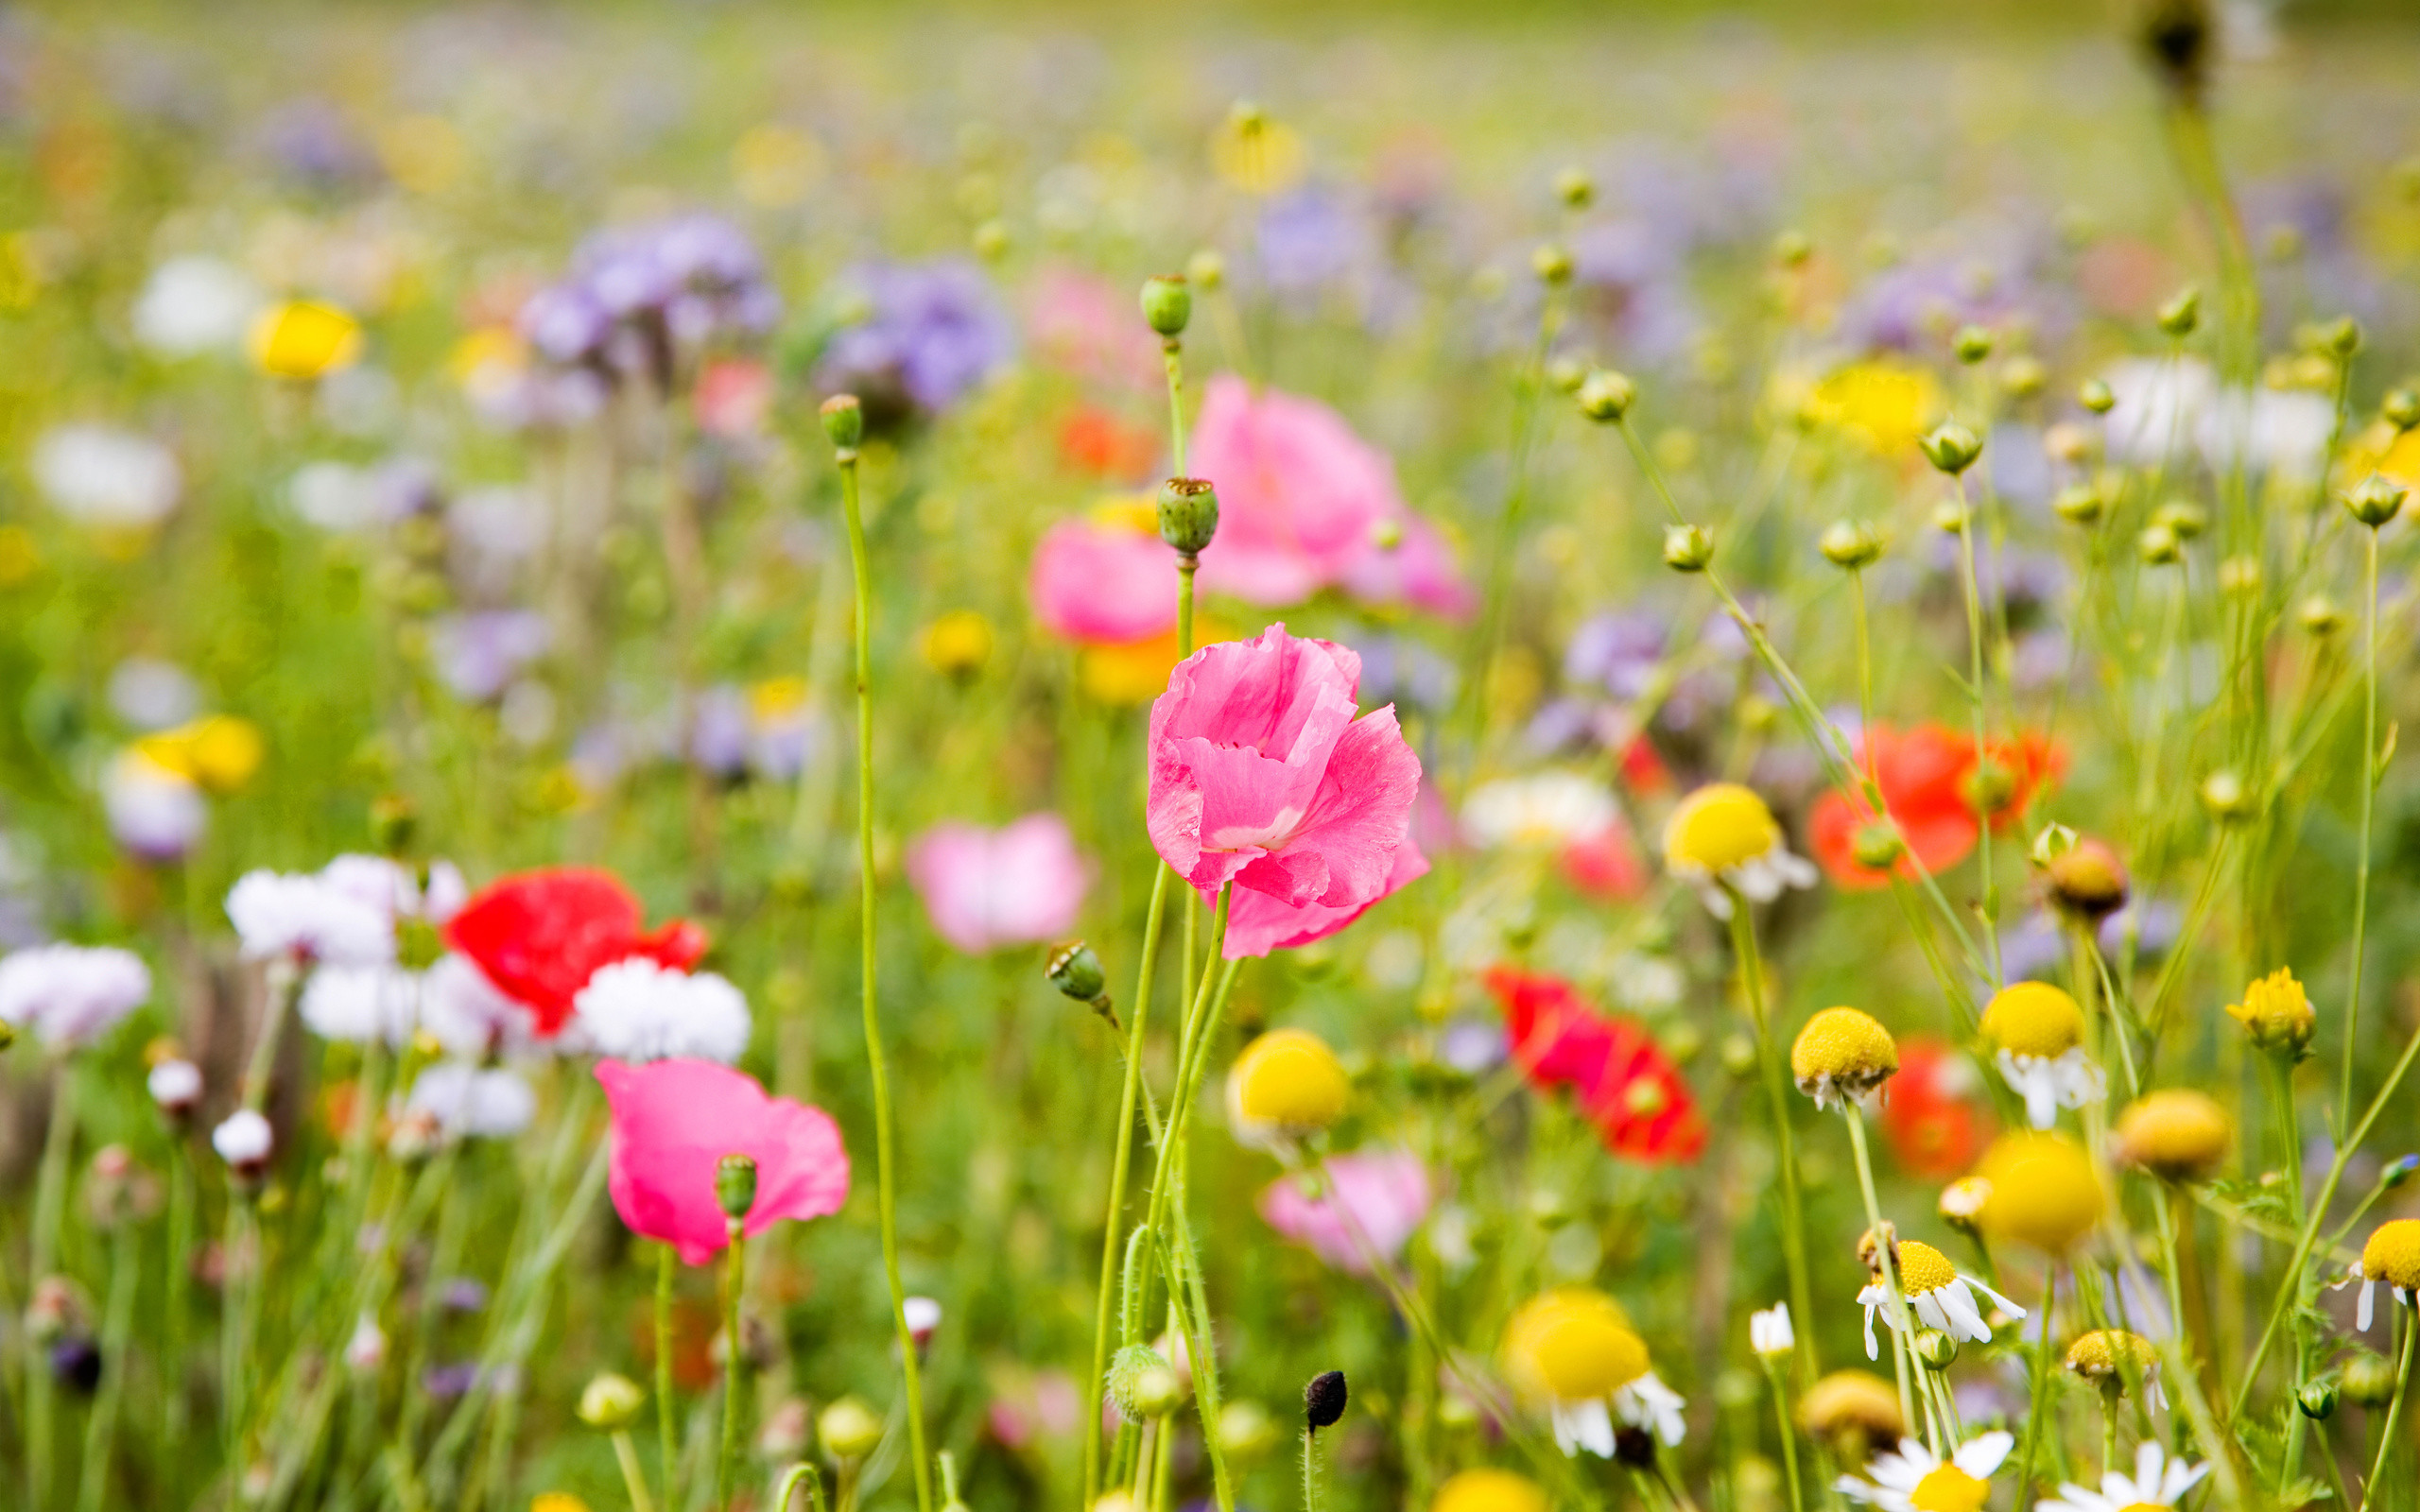 Res: 2560x1600, Summer Flowers Wallpapers Free